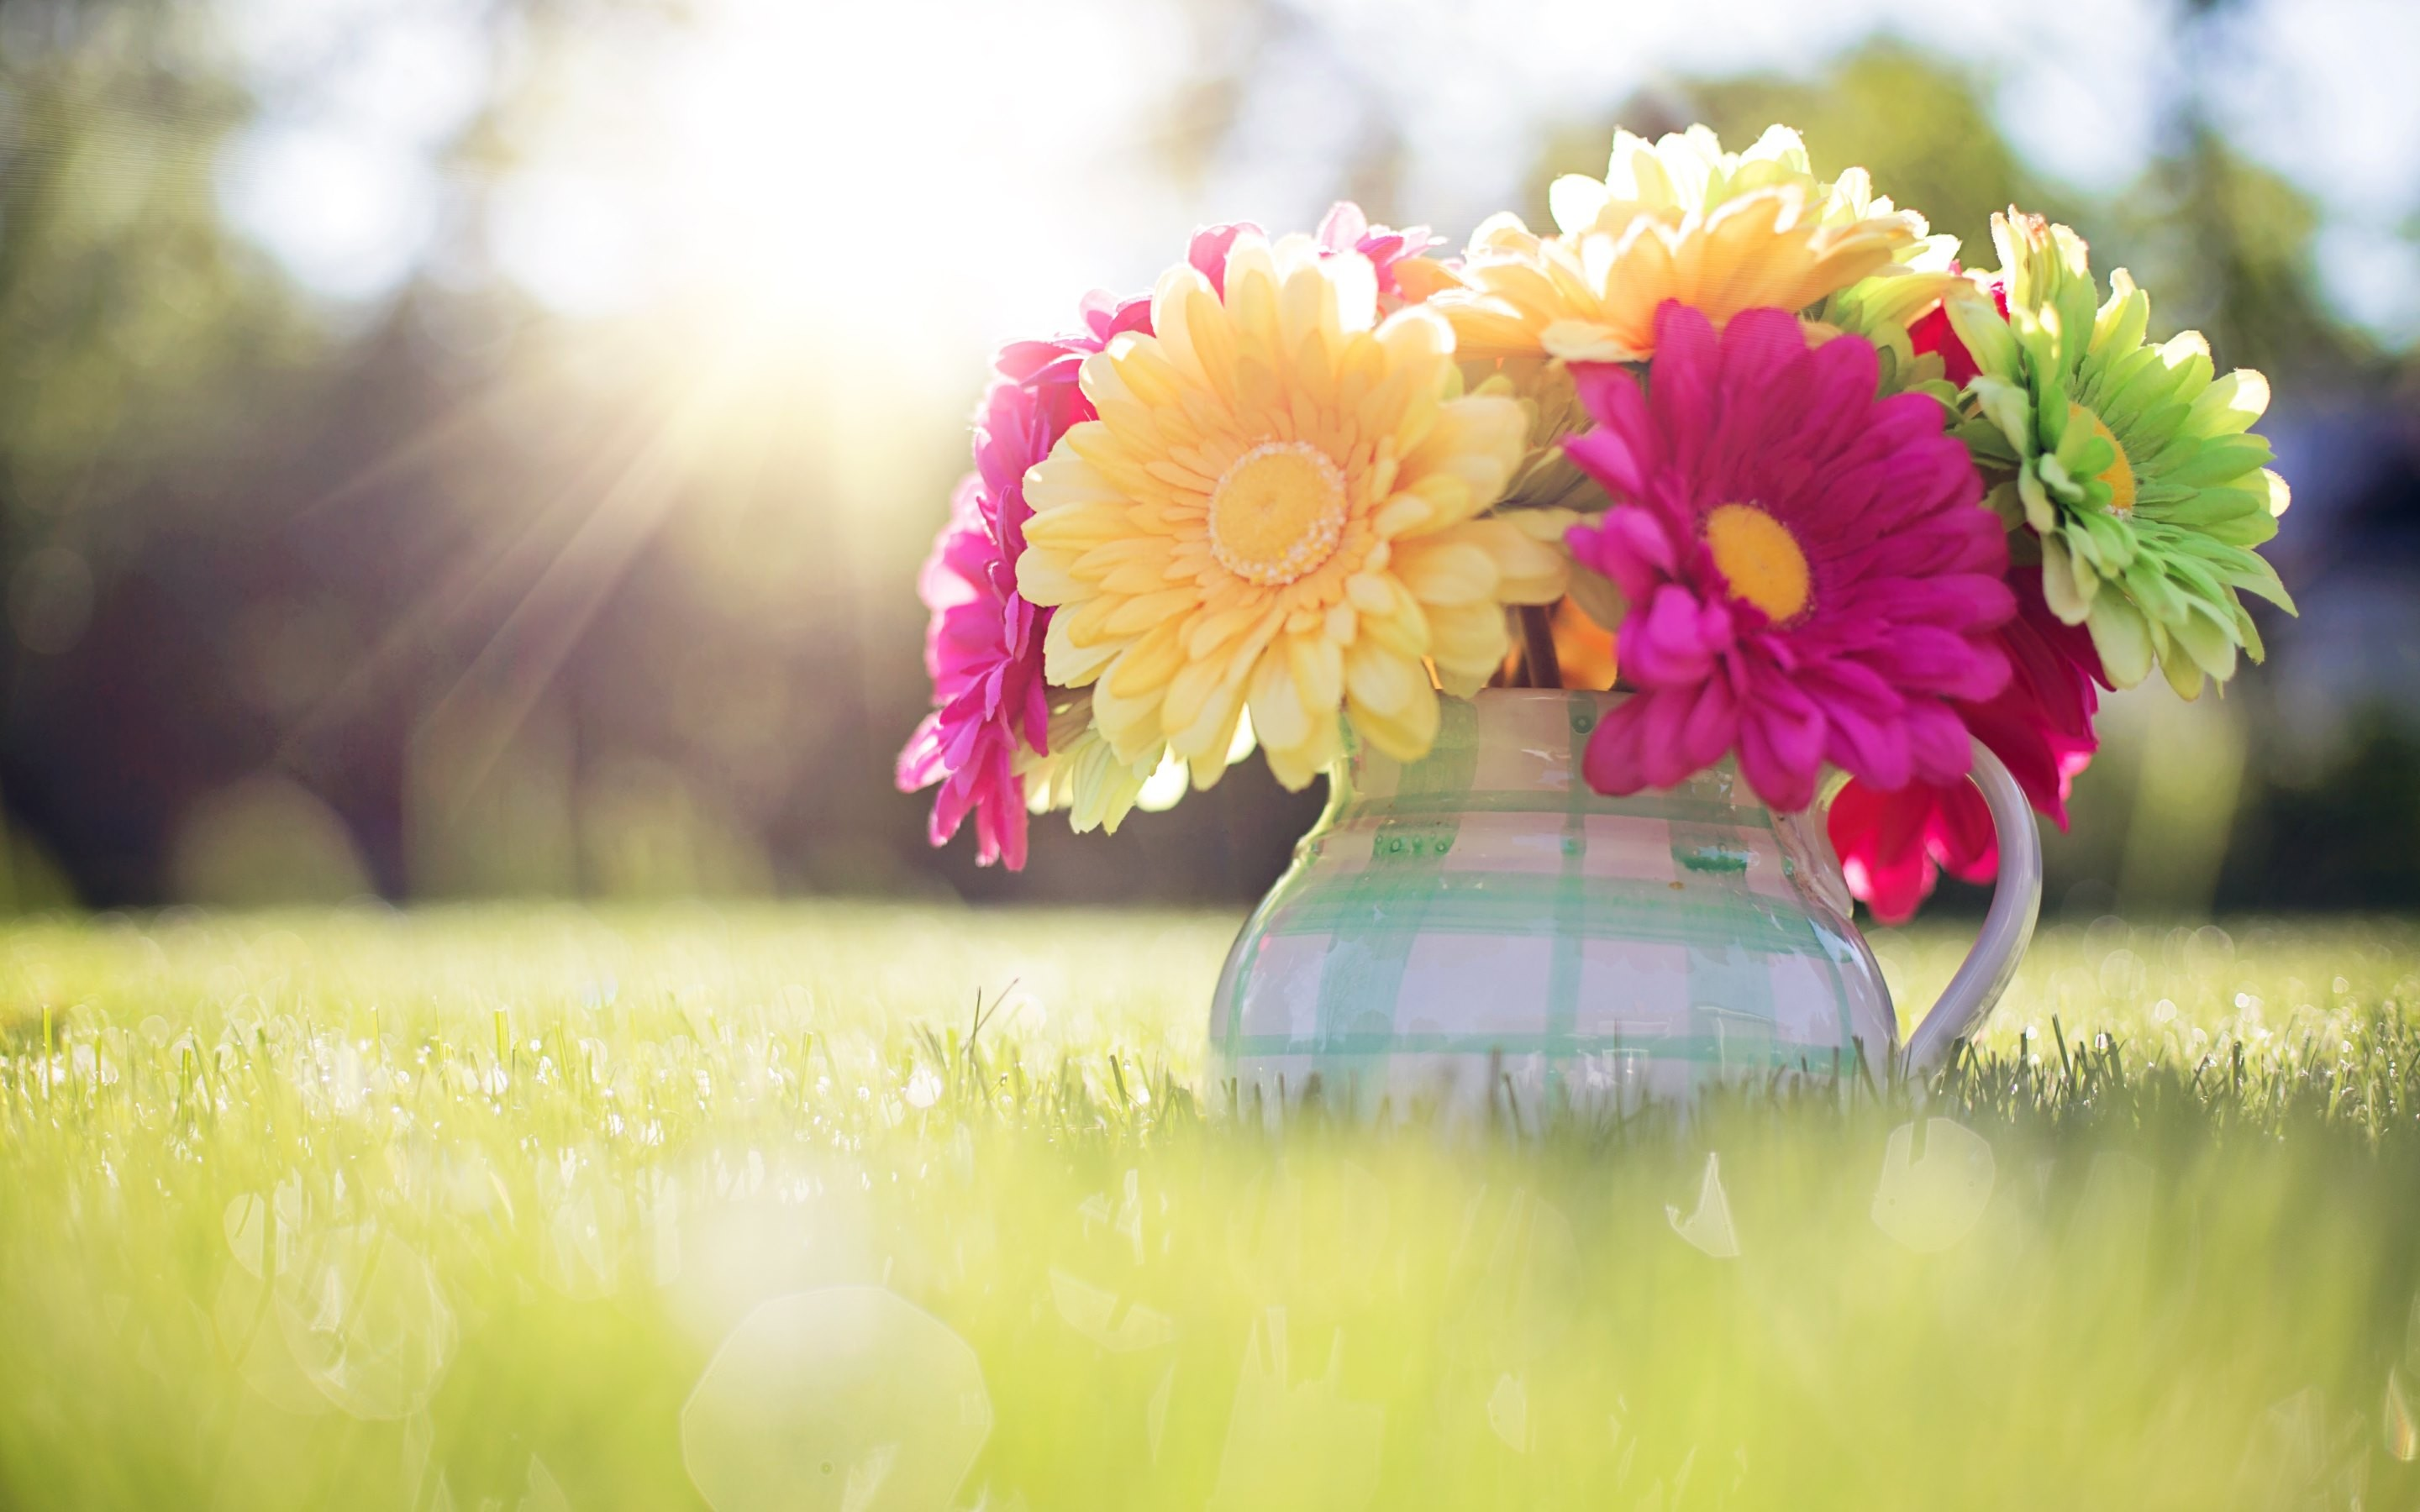 44 spring wallpapers download free hd wallpapers for - Free computer backgrounds for spring ...